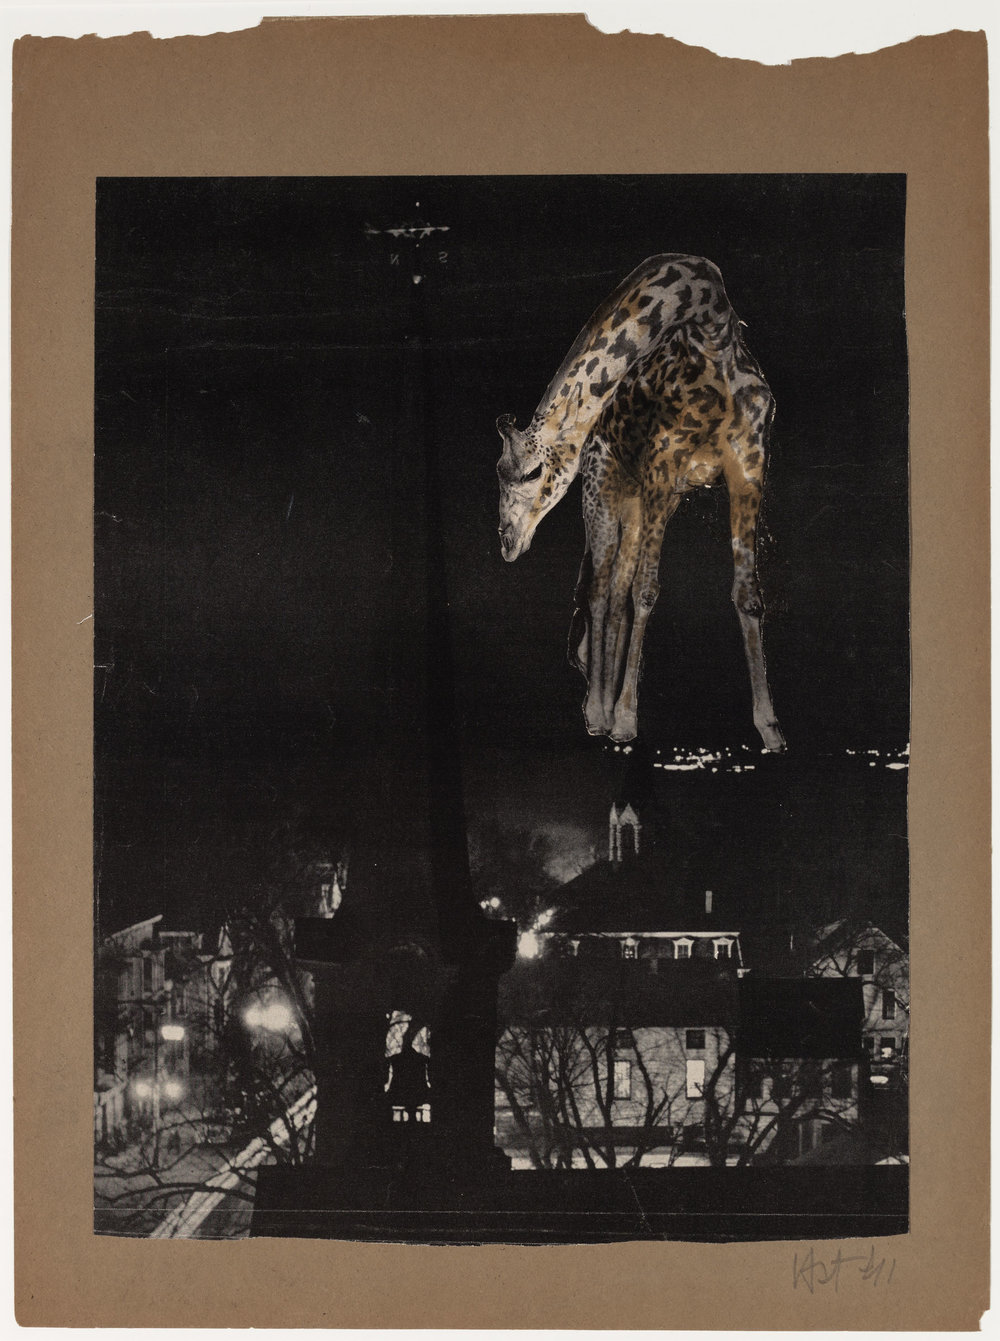 Hedda Sterne, Untitled, 1941, Collage, 16 in. x 12 7/8 in.